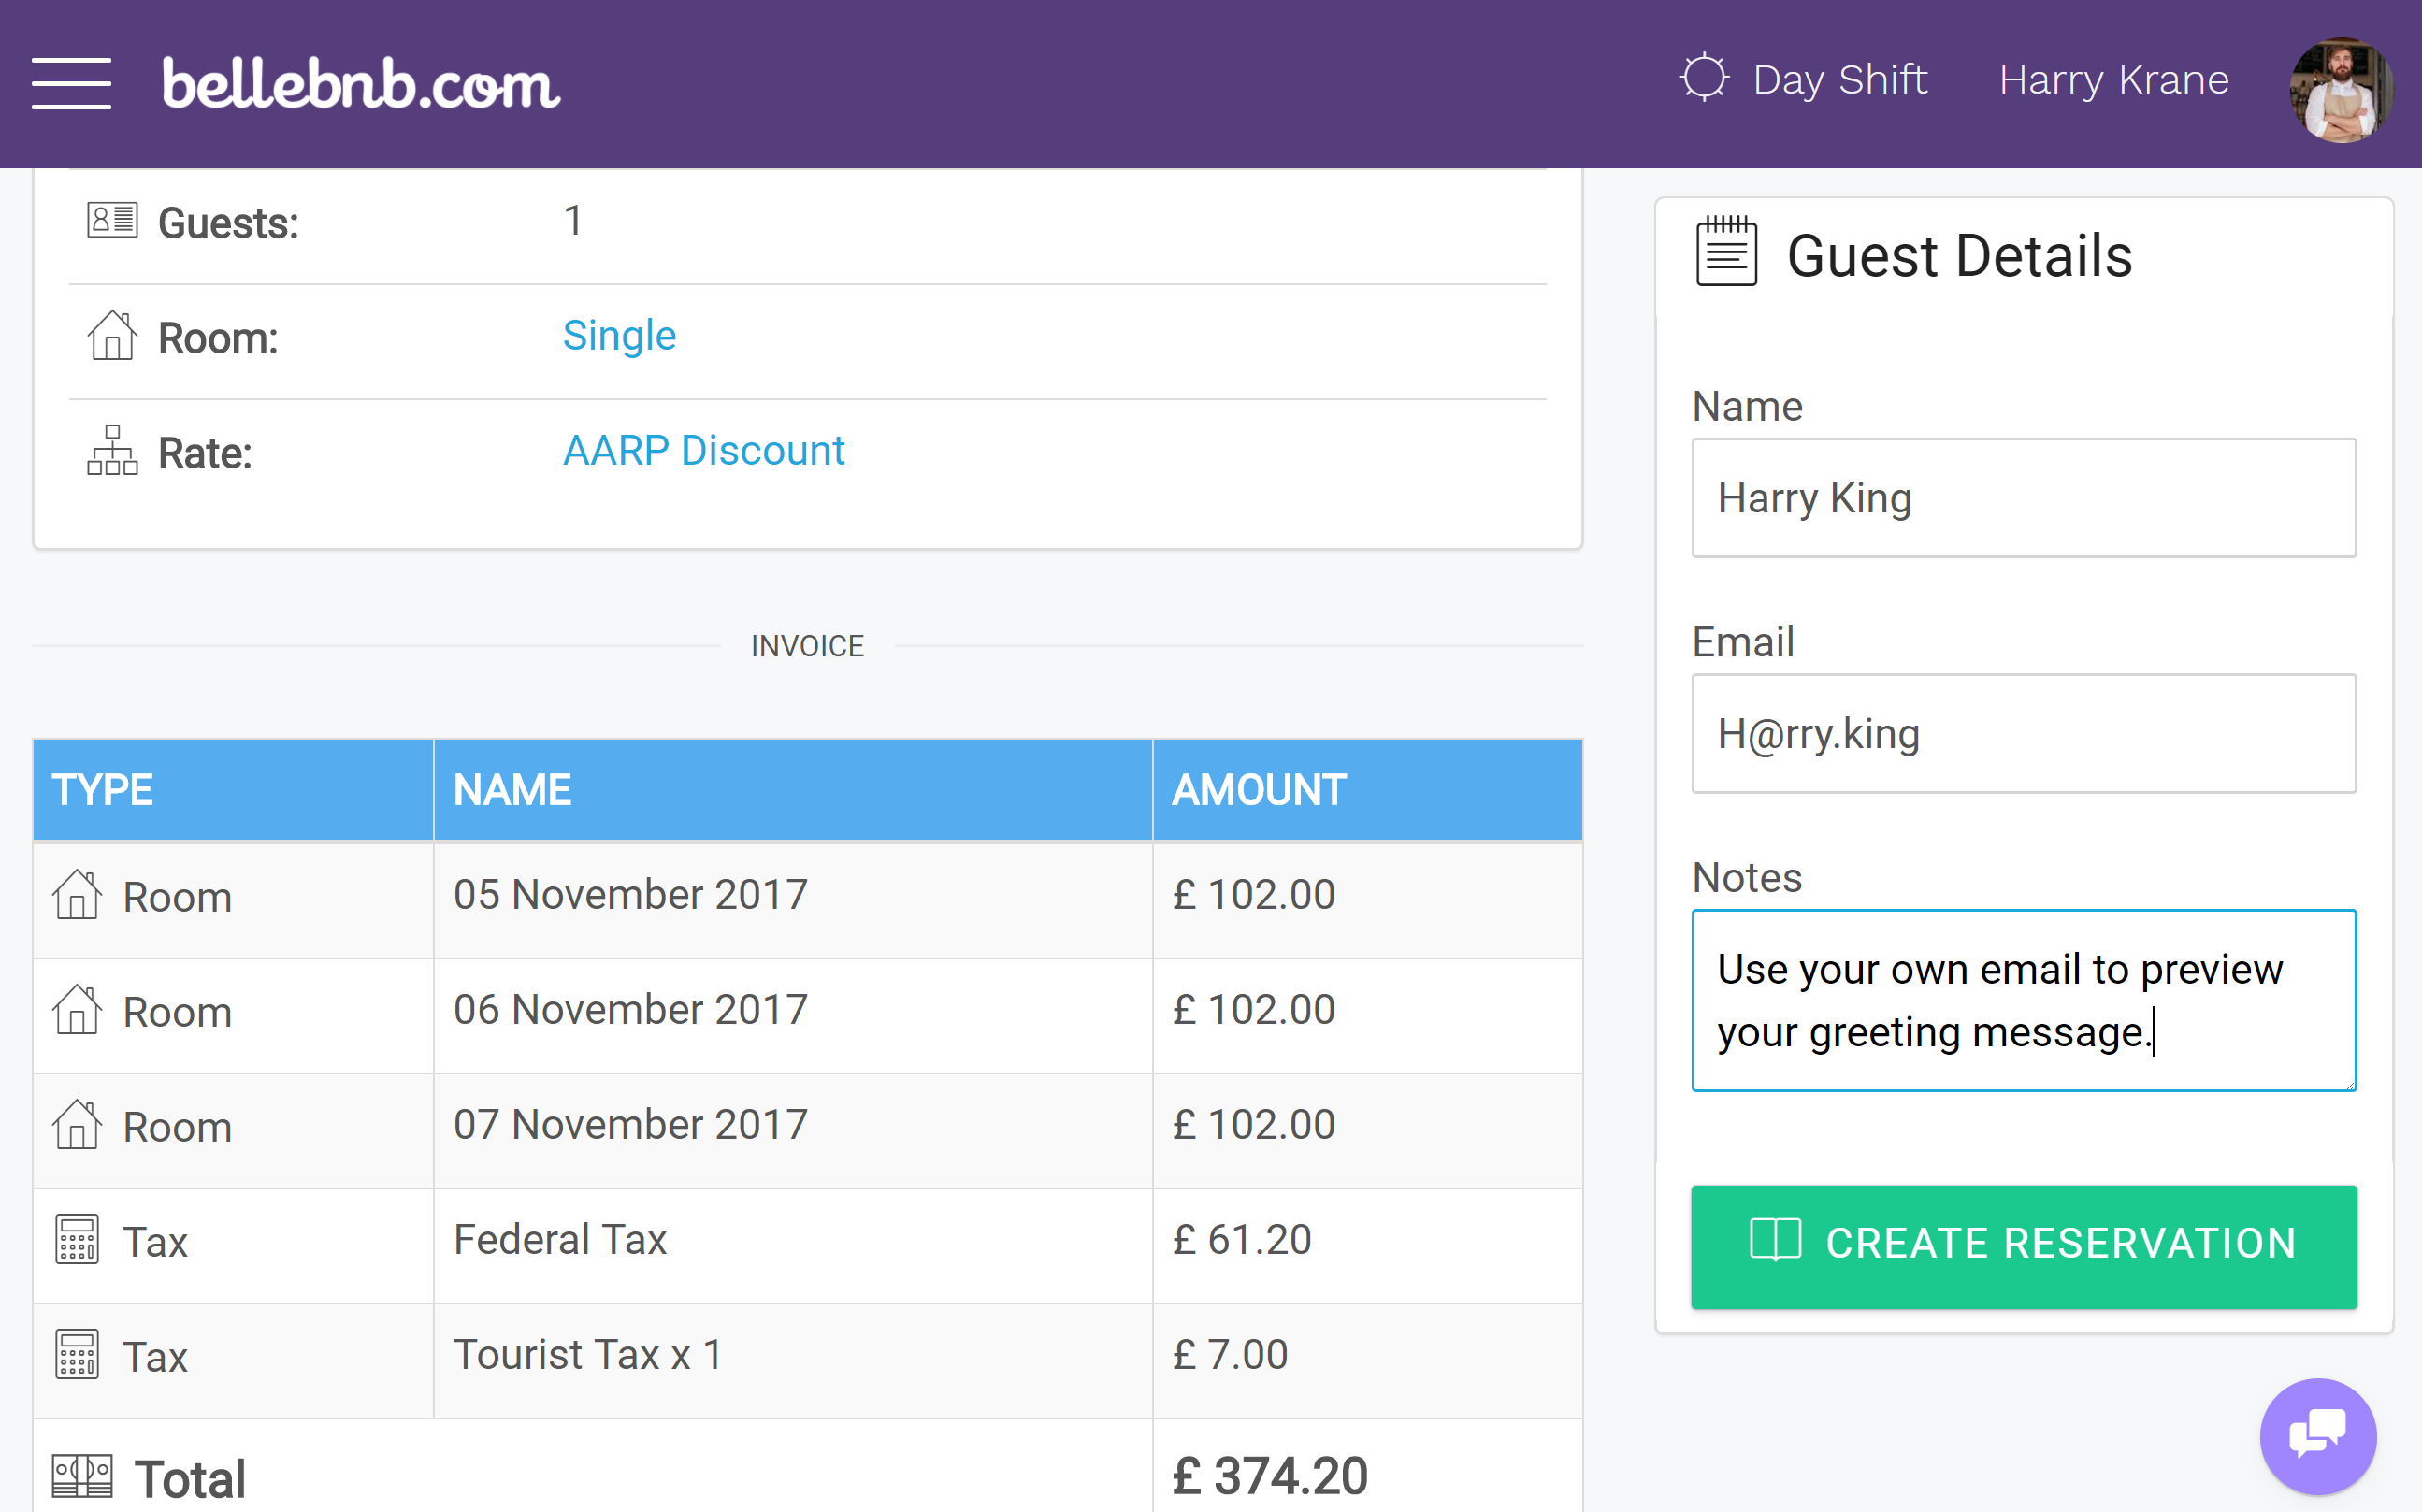 Hotel CRM Customer Relationship Management, Hotel Management HTML Emails You can now create custom emails for your daily hotel activities. You can create a custom message for new reservations, check-outs, and cancellations. Edit your messages in HTML to send out automatically as part of your bookings flow..